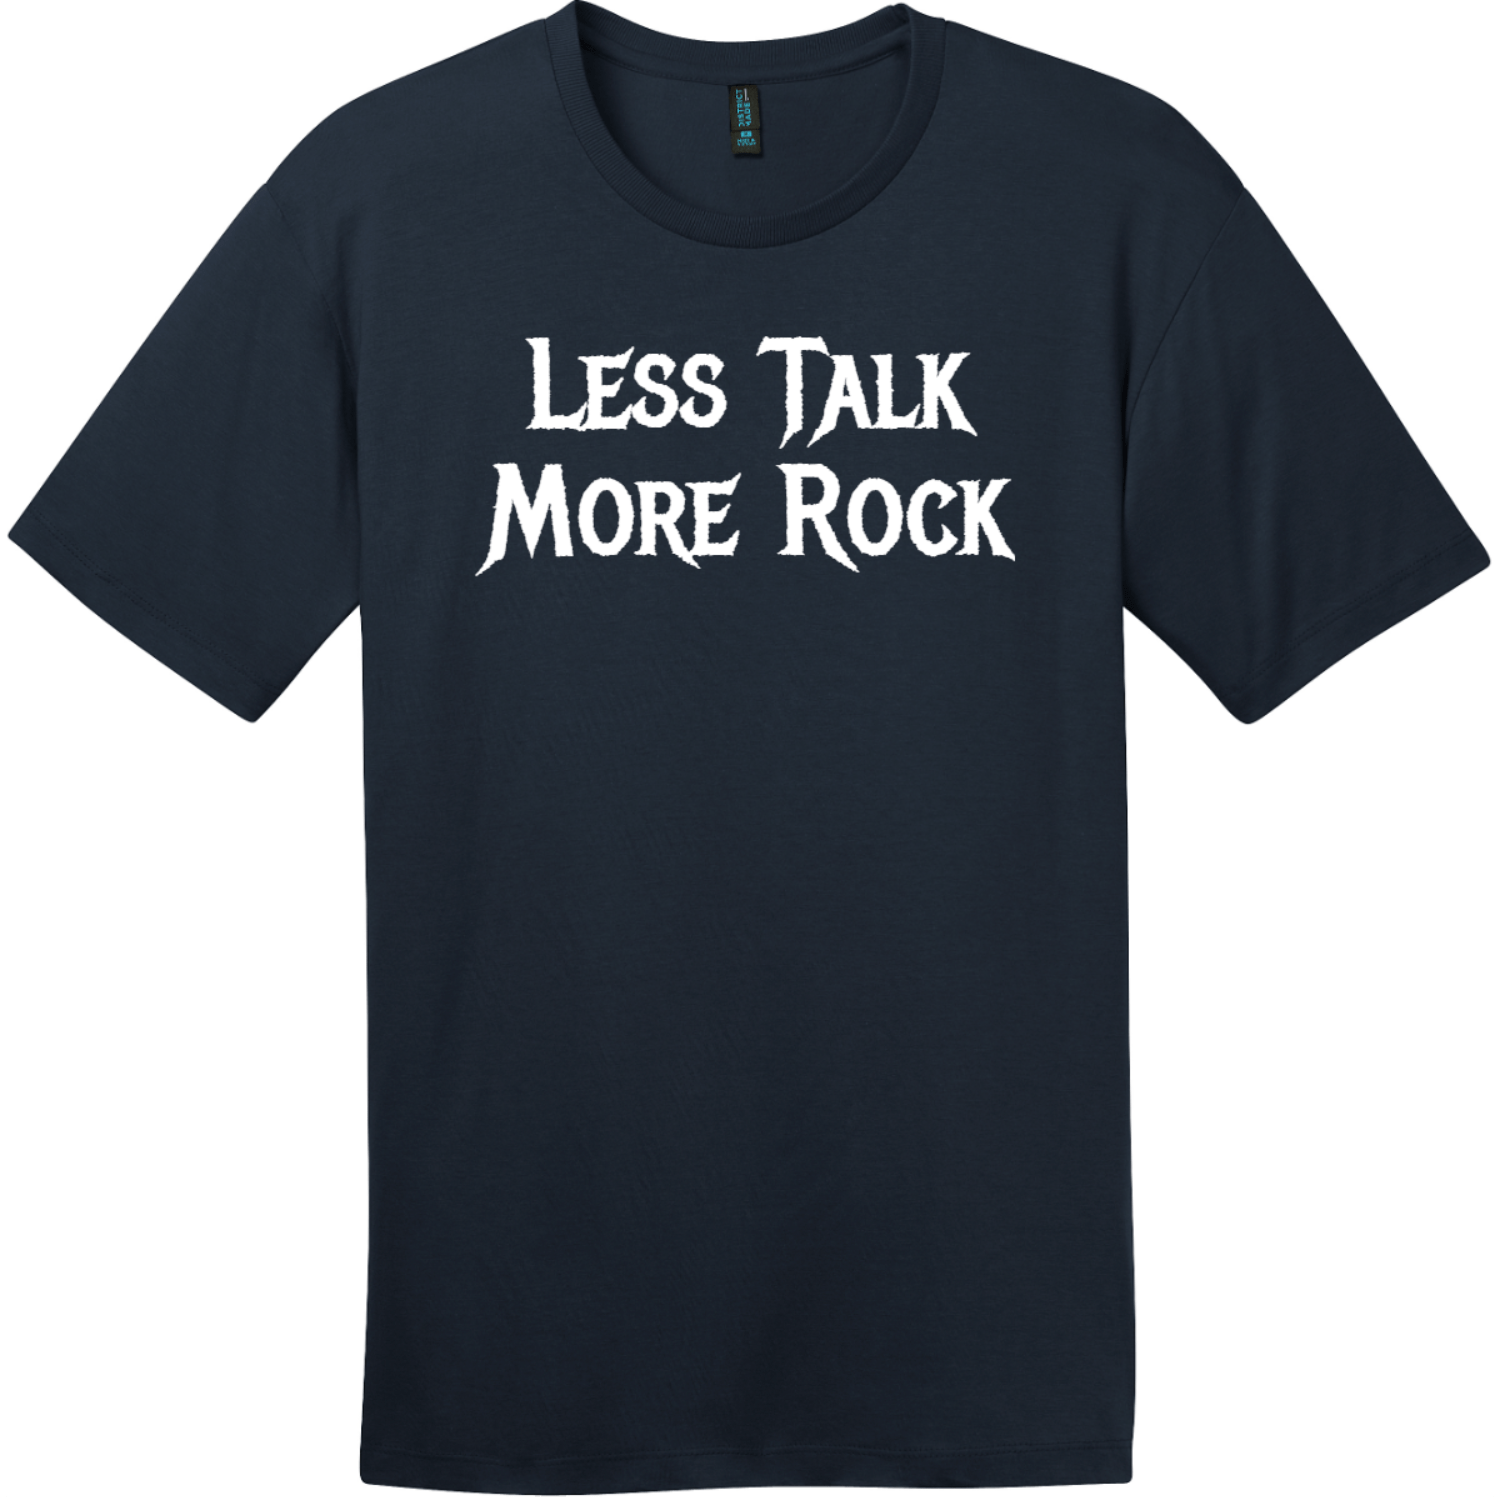 Less Talk More Rock T-Shirt New Navy District Perfect Weight Tee DT104